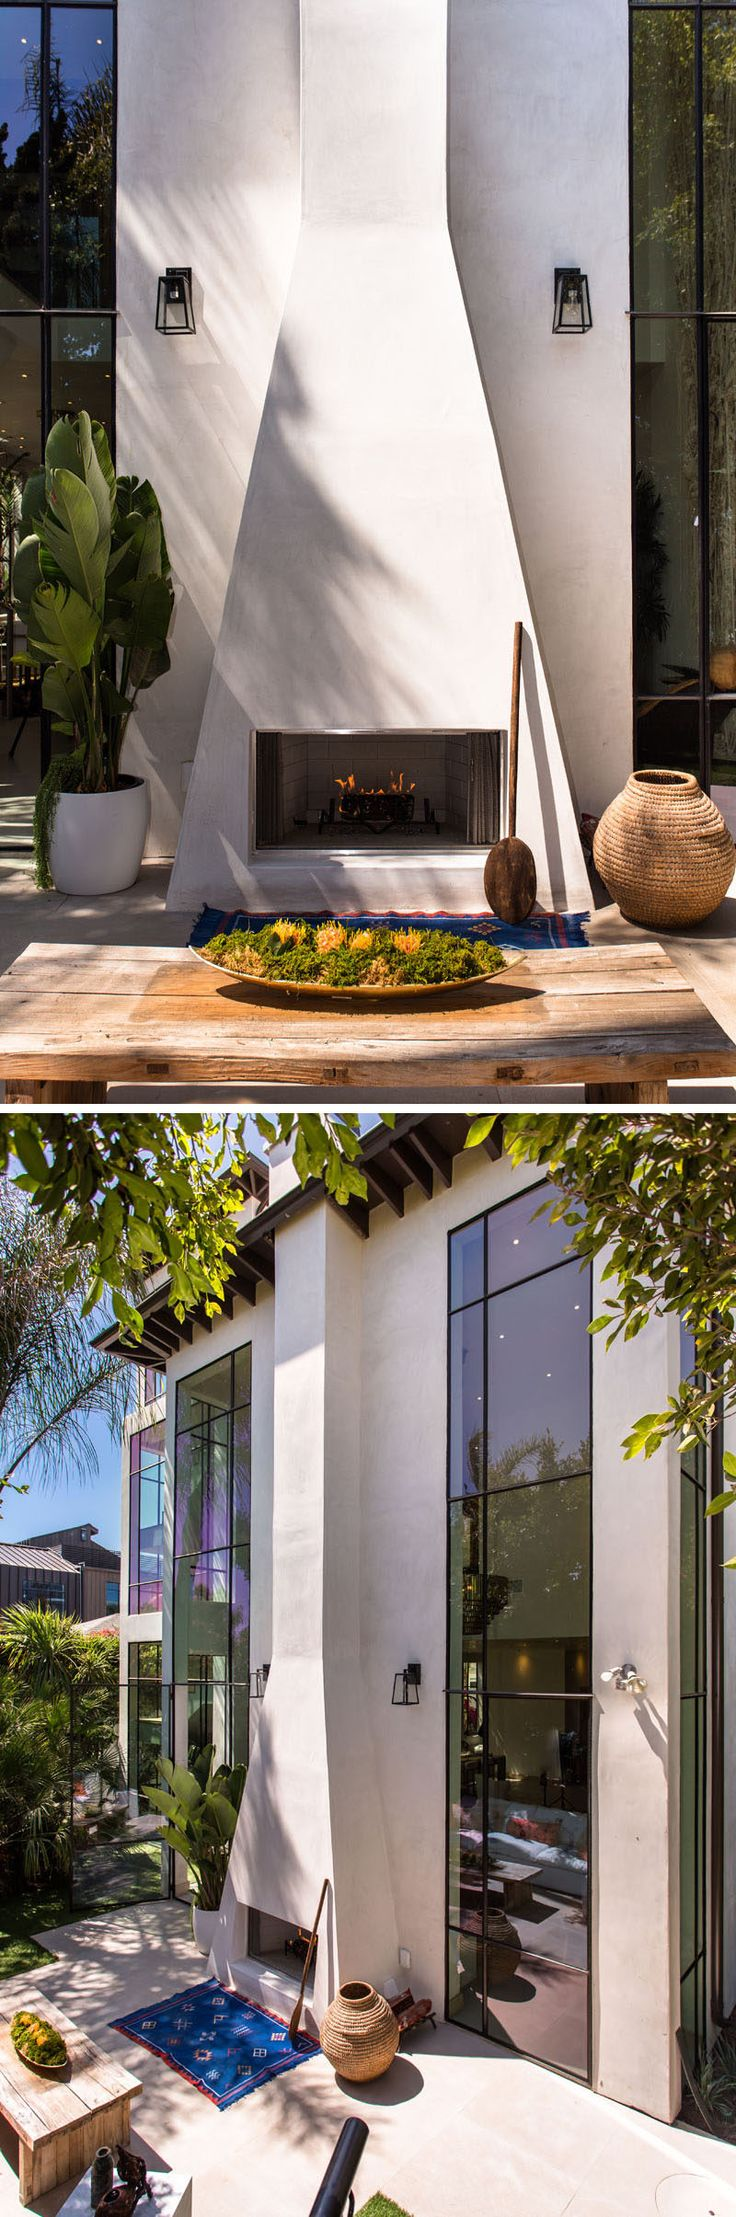 Hillside california home with gorgeous outdoor spaces - This Art Filled California Home Has A Venice Beach Vibe